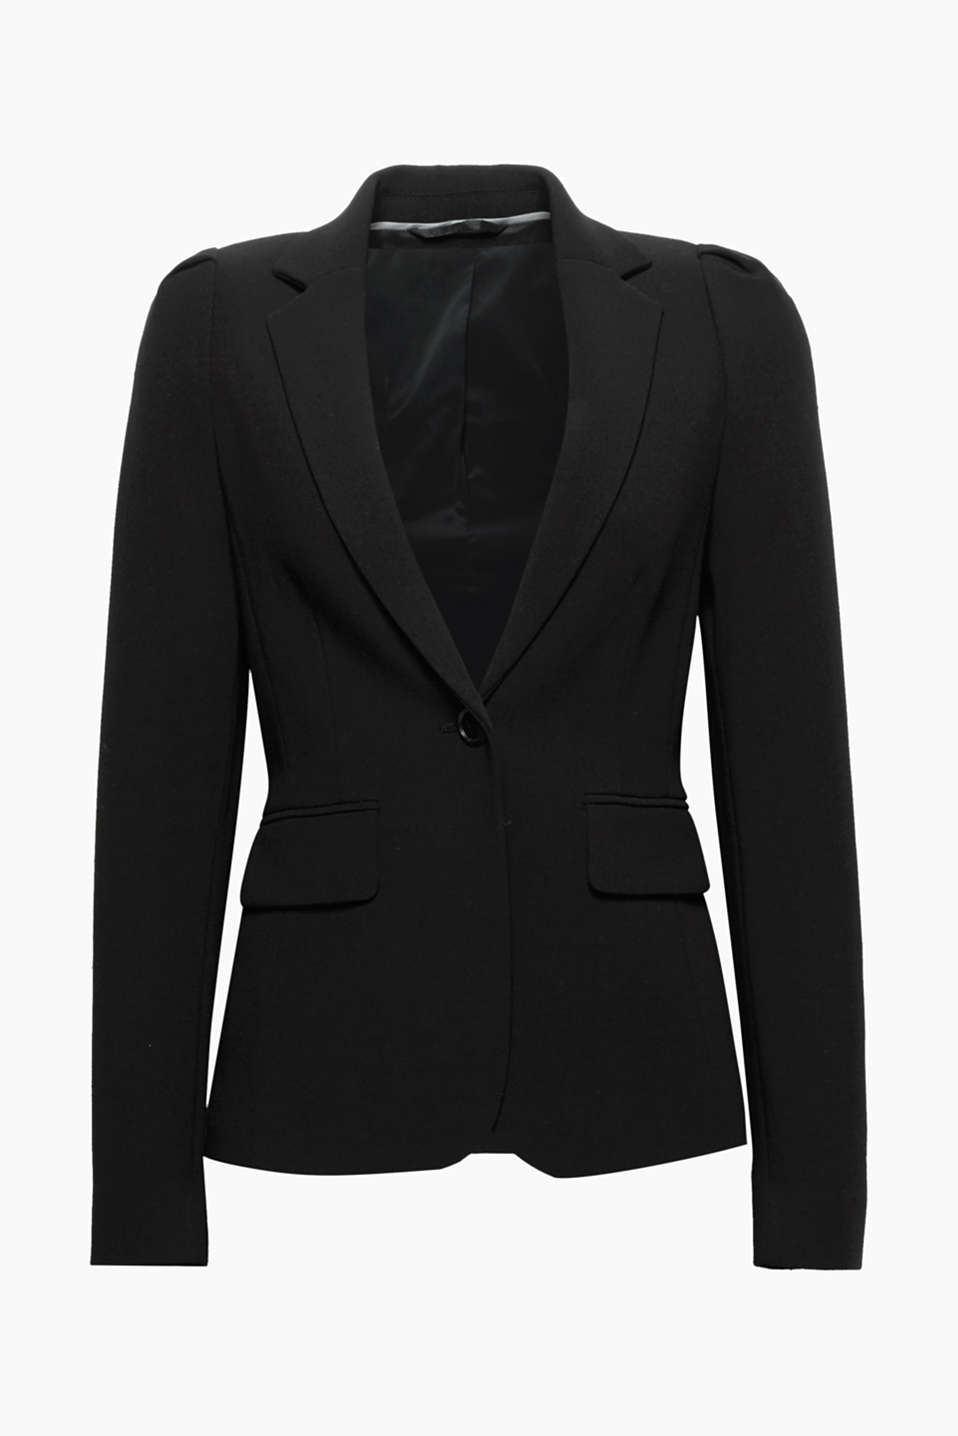 The long puff sleeves and fitted, 1-button cut give this stretch blazer its feminine flair!